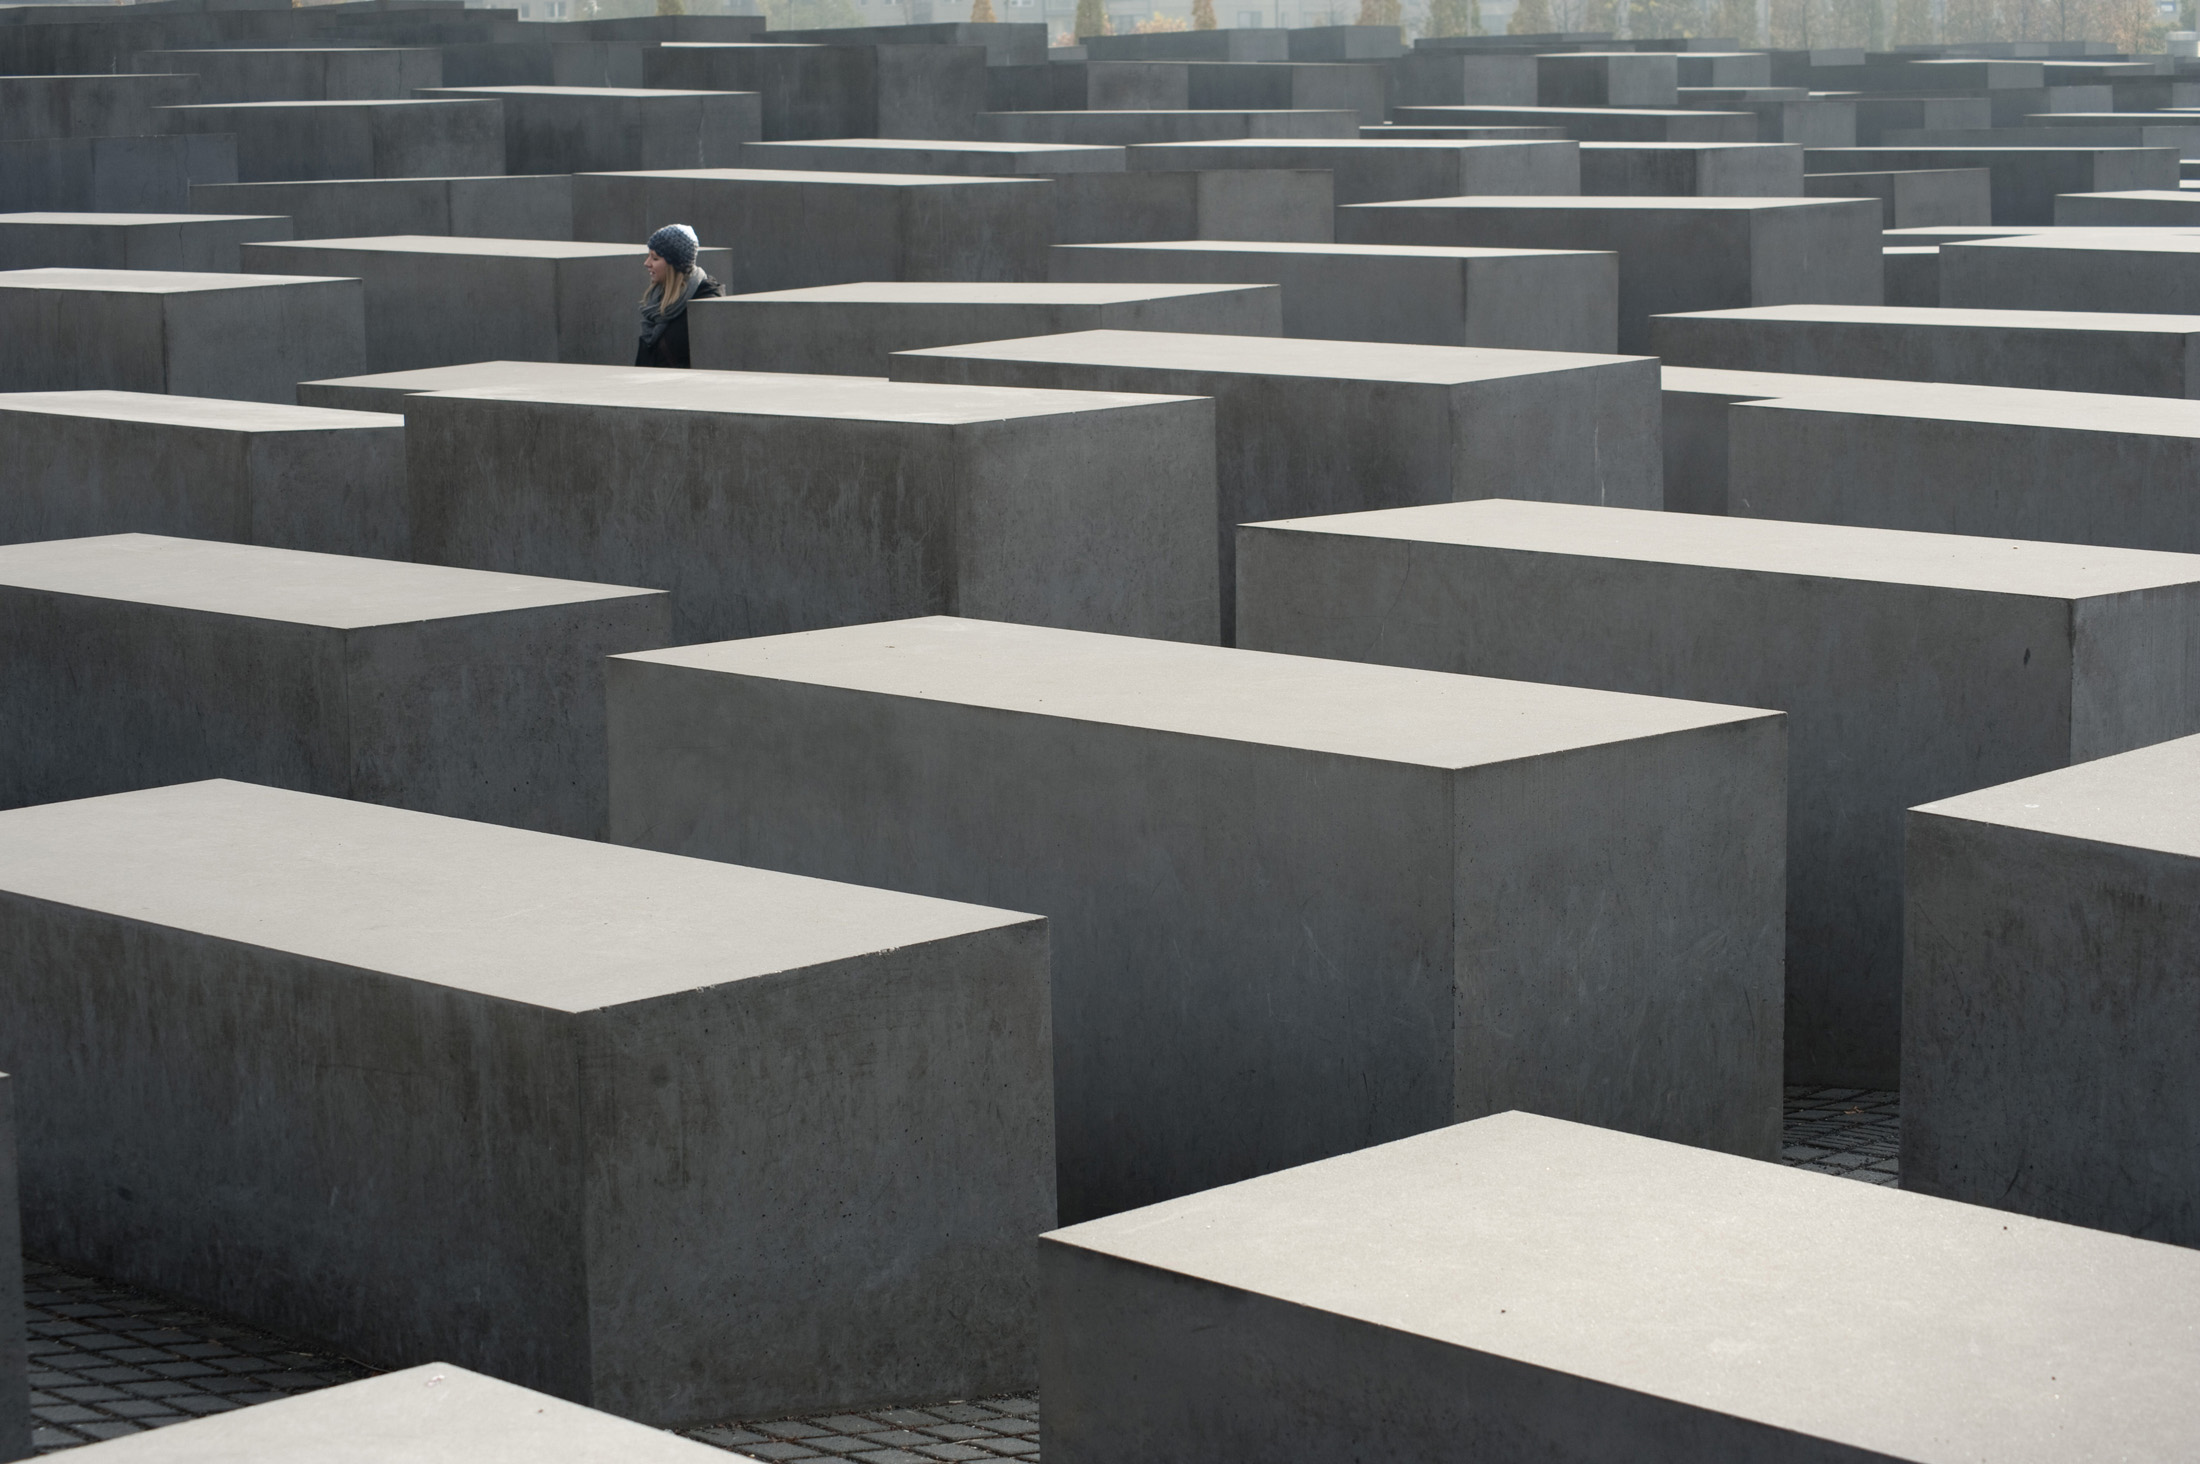 Memorial in Berlin for those who died during the holocaust